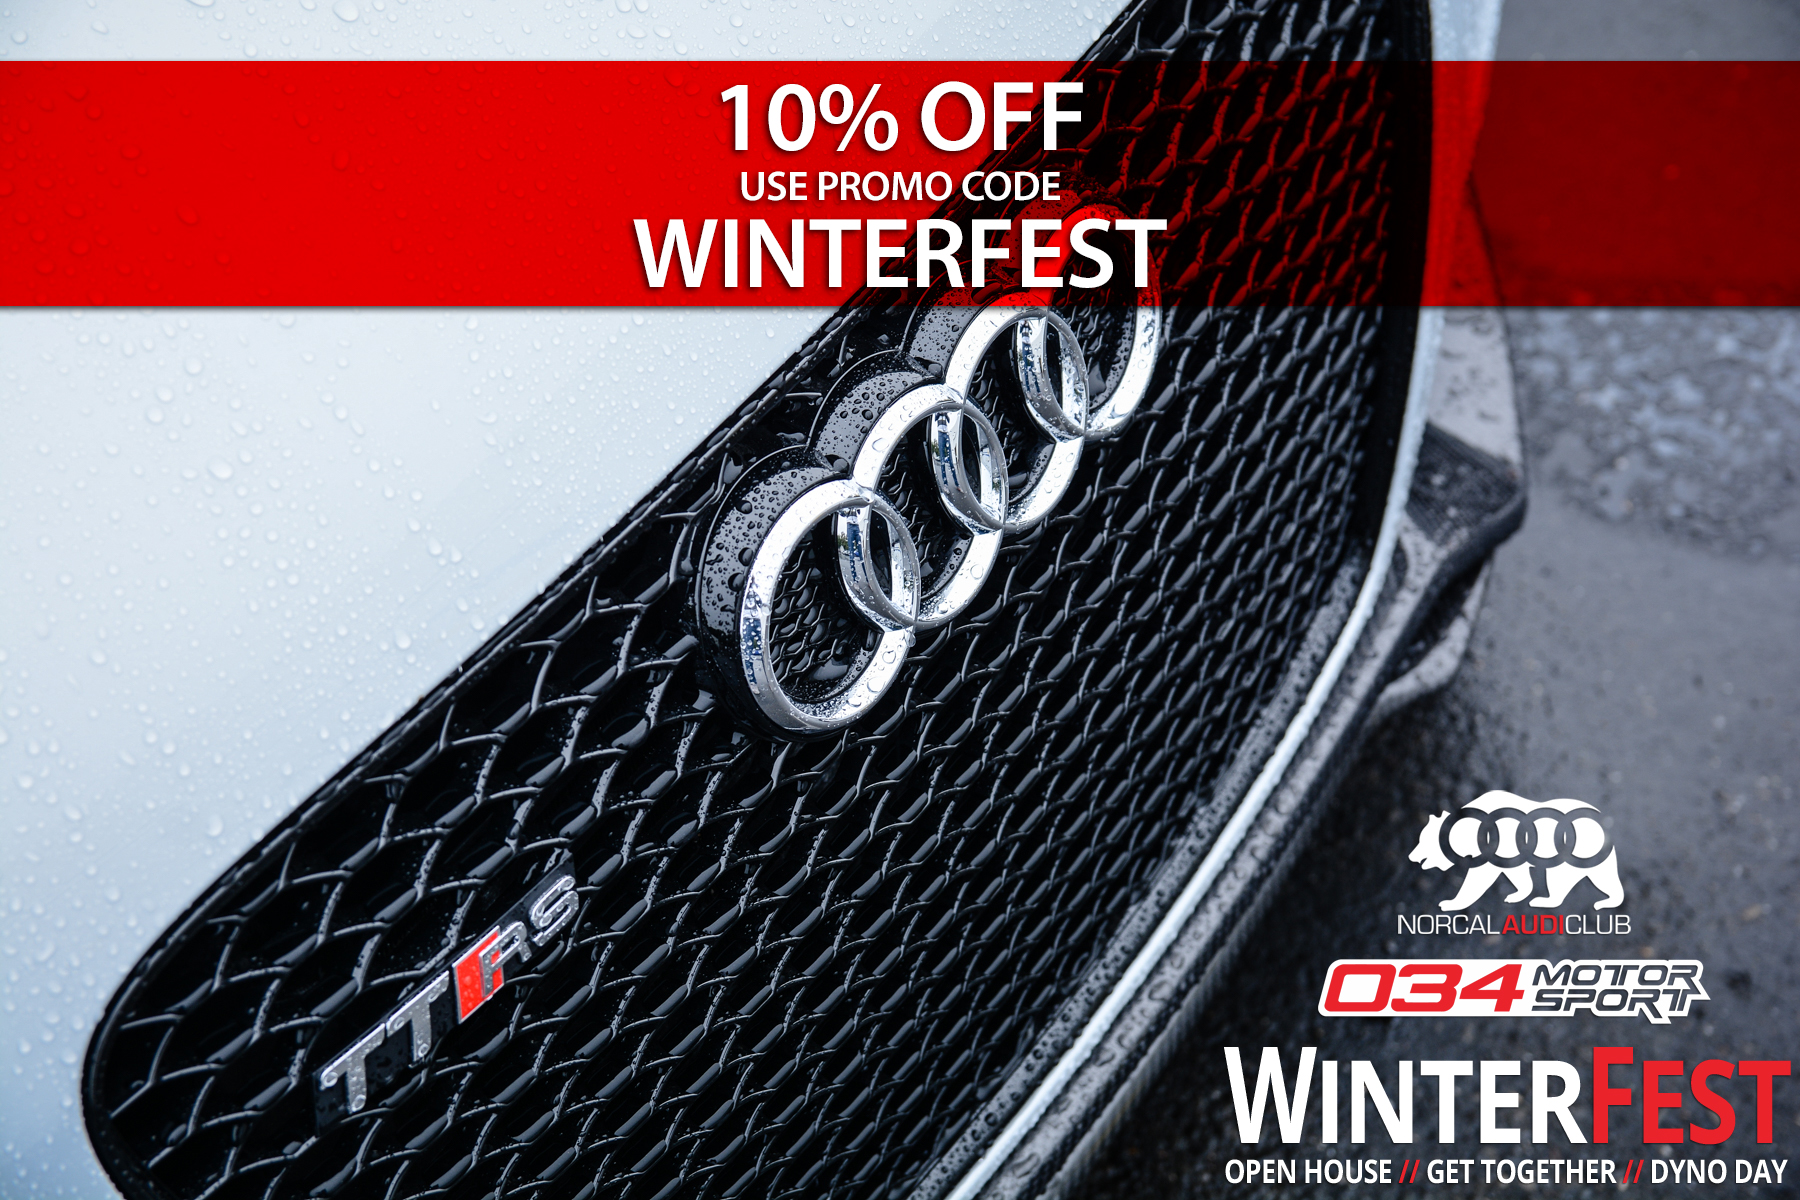 WinterFest 2017 Sale 034Motorsport